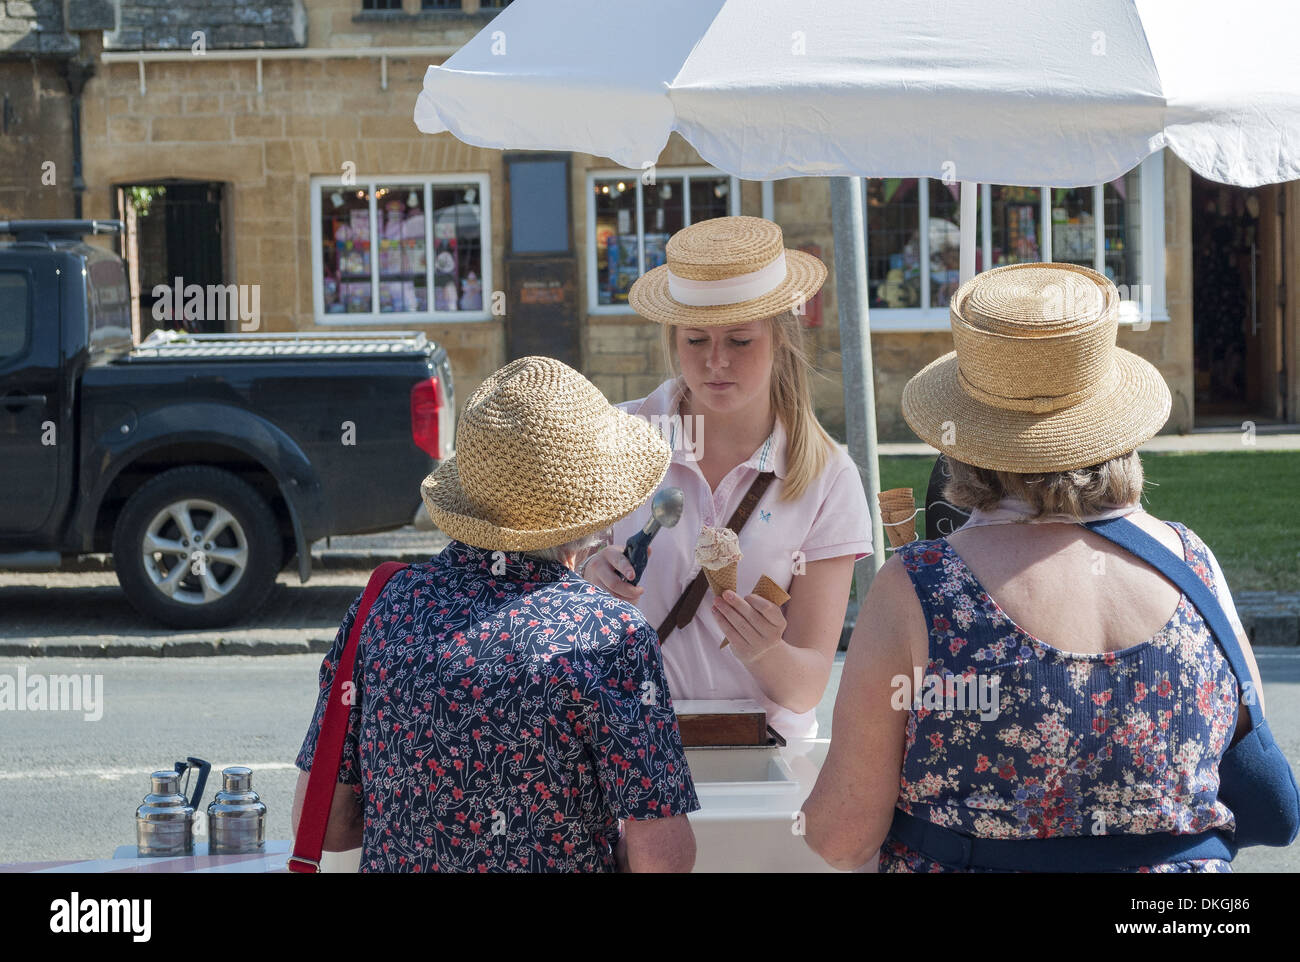 02638f1652b51 Girl serving ice cream on a hot summers day to two ladies in straw summer  hats in Broadway Village